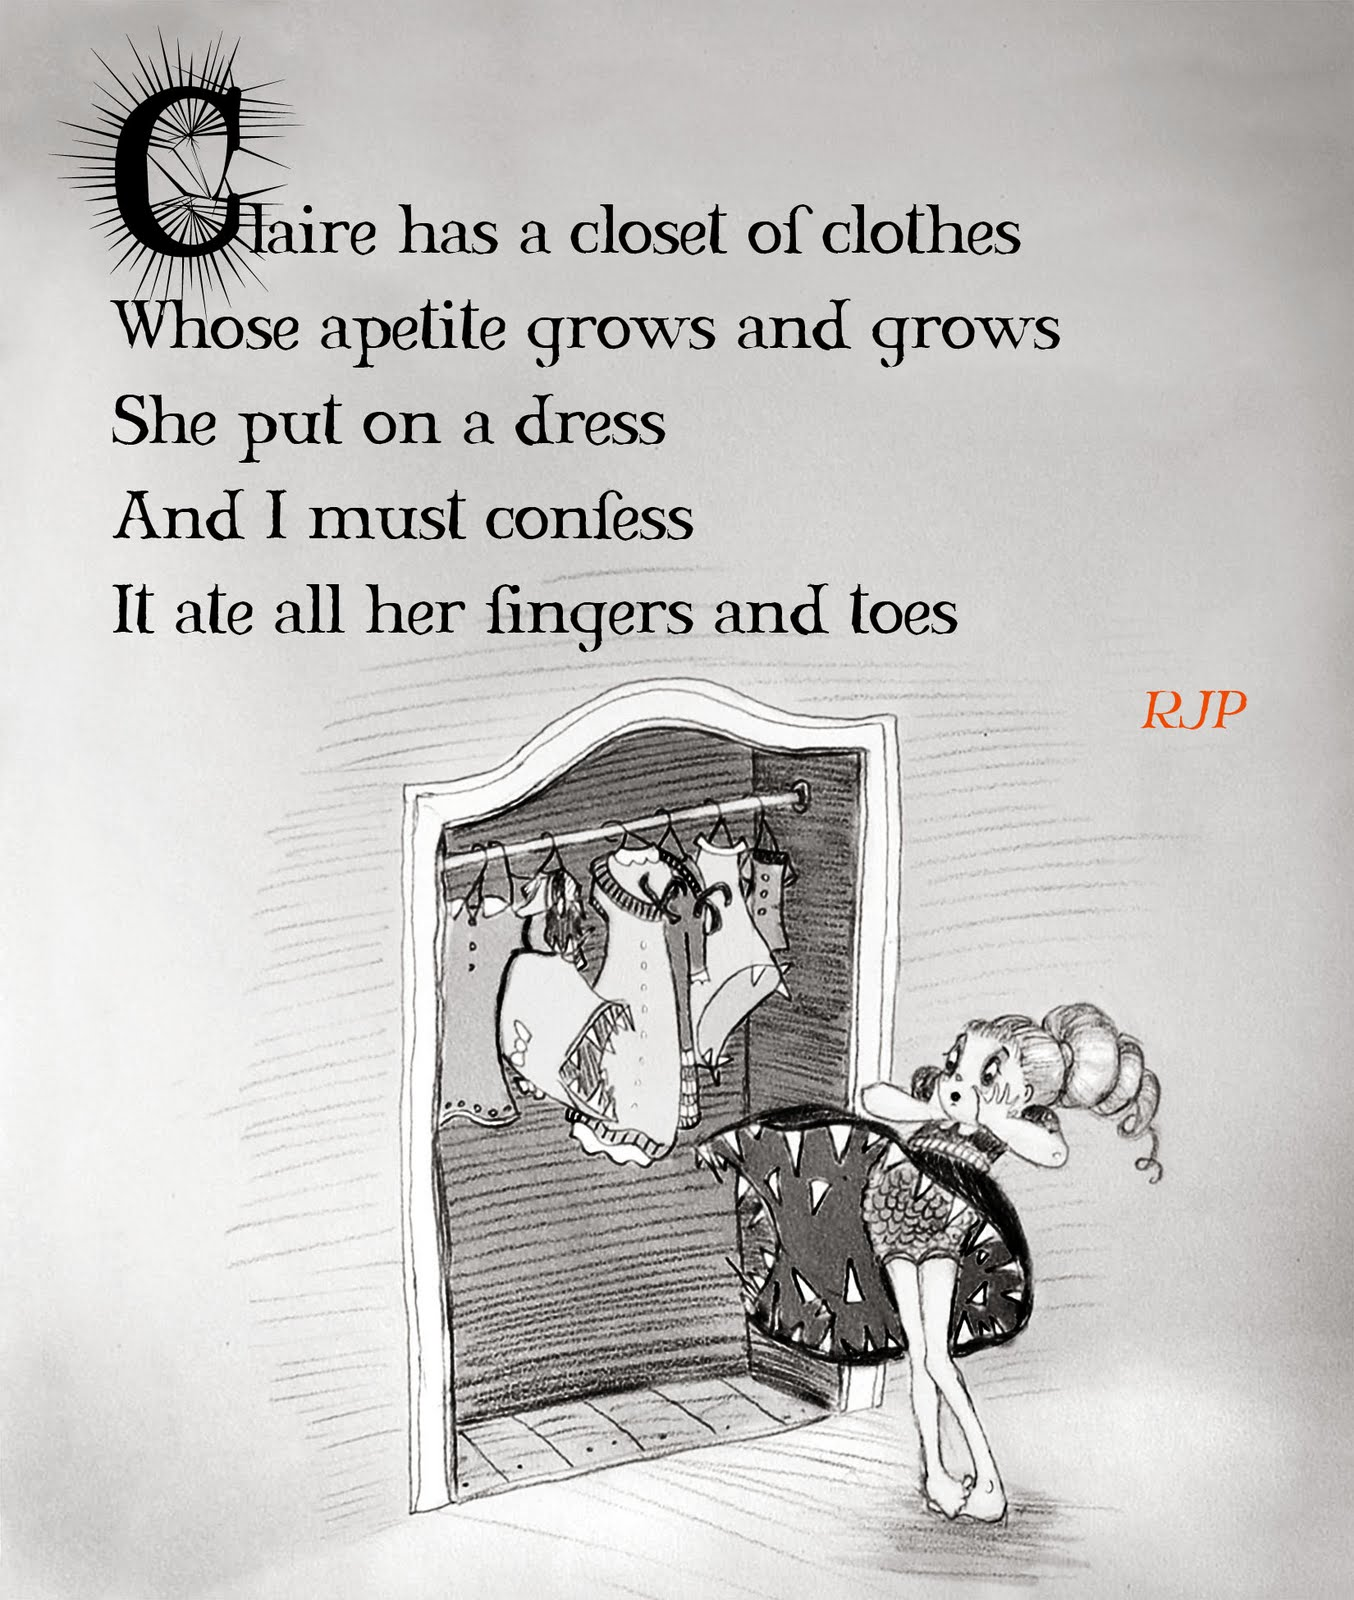 limerick examples for kids